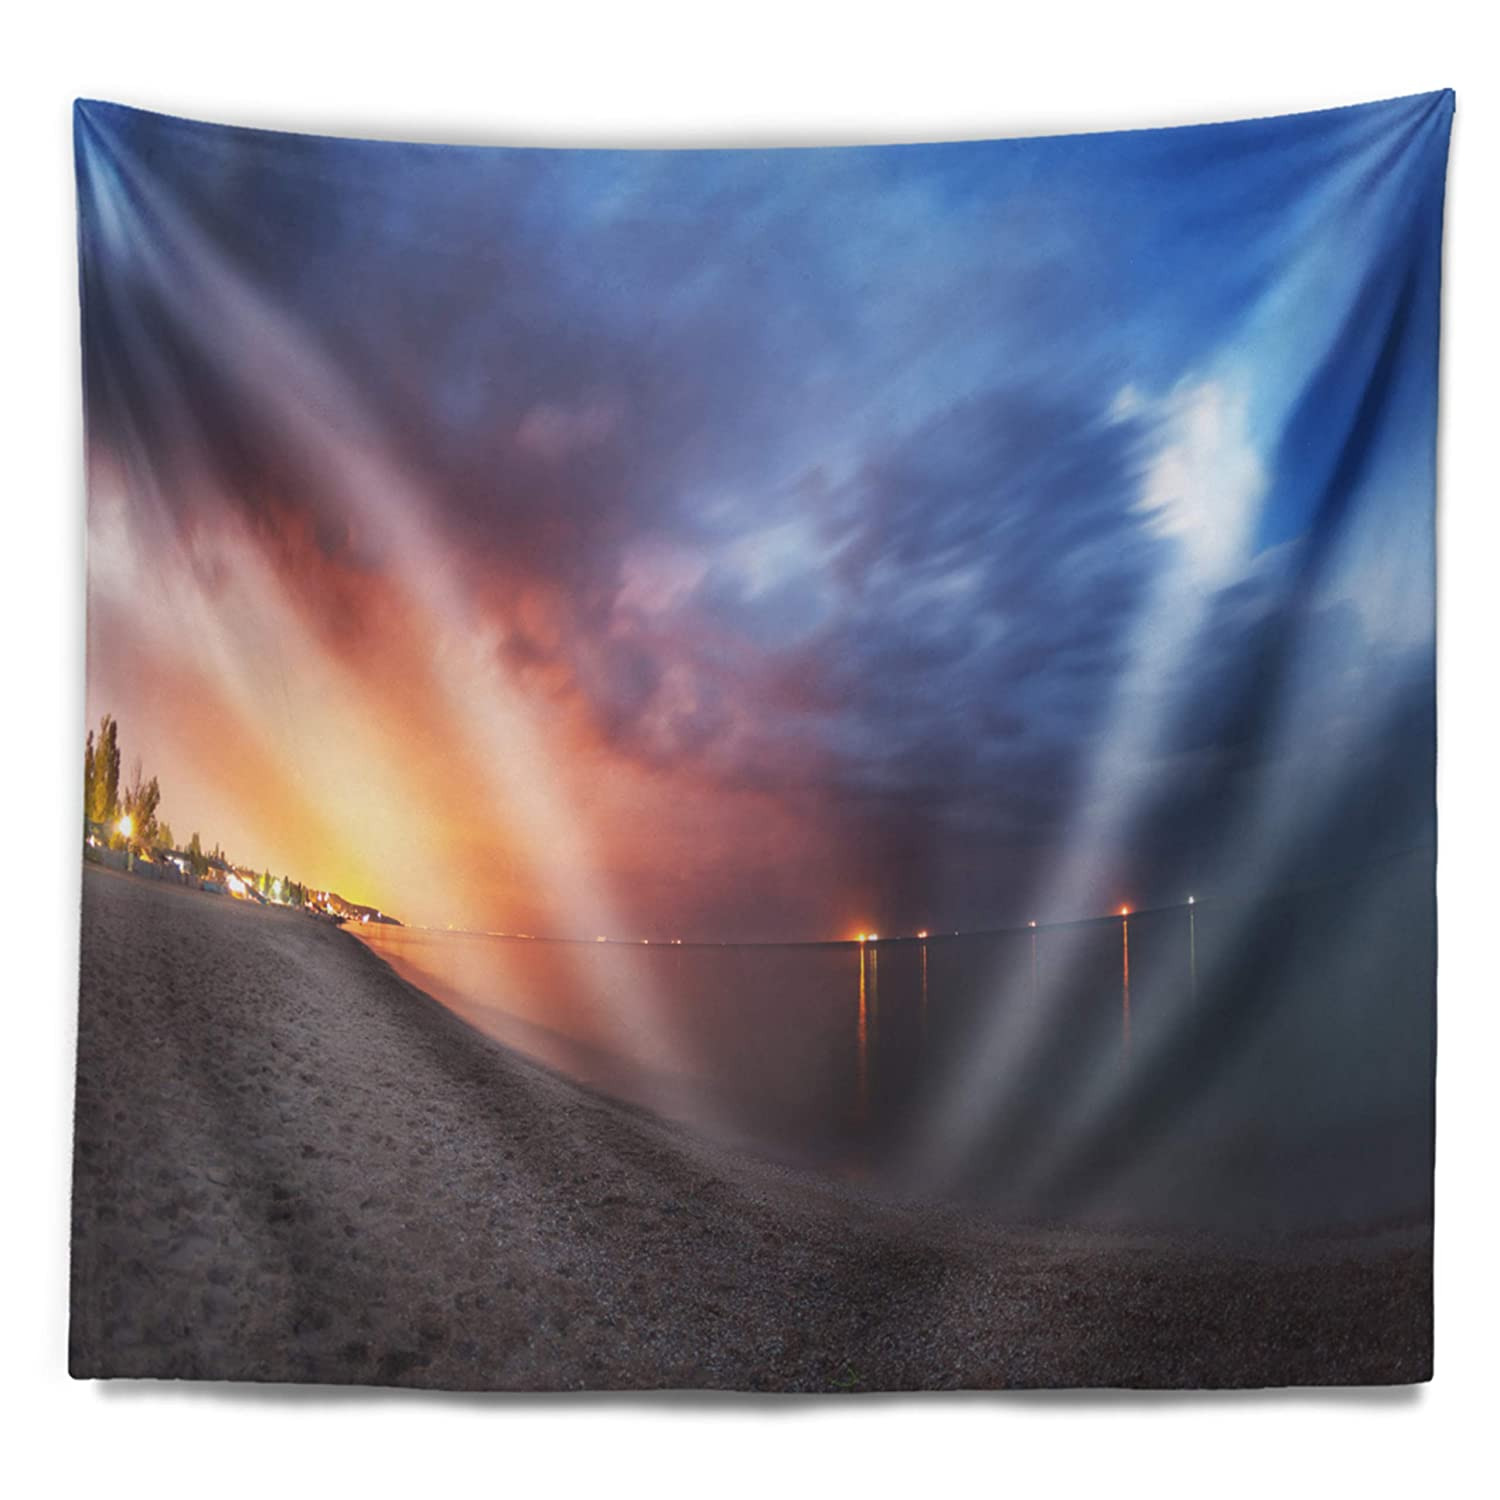 Designart Tap9353 39 32 Summer Night With Blue Sky Skyline Photography Blanket Décor Art For Home And Office Wall Tapestry Medium X 32 In 39 In Created On Lightweight Polyester Fabric